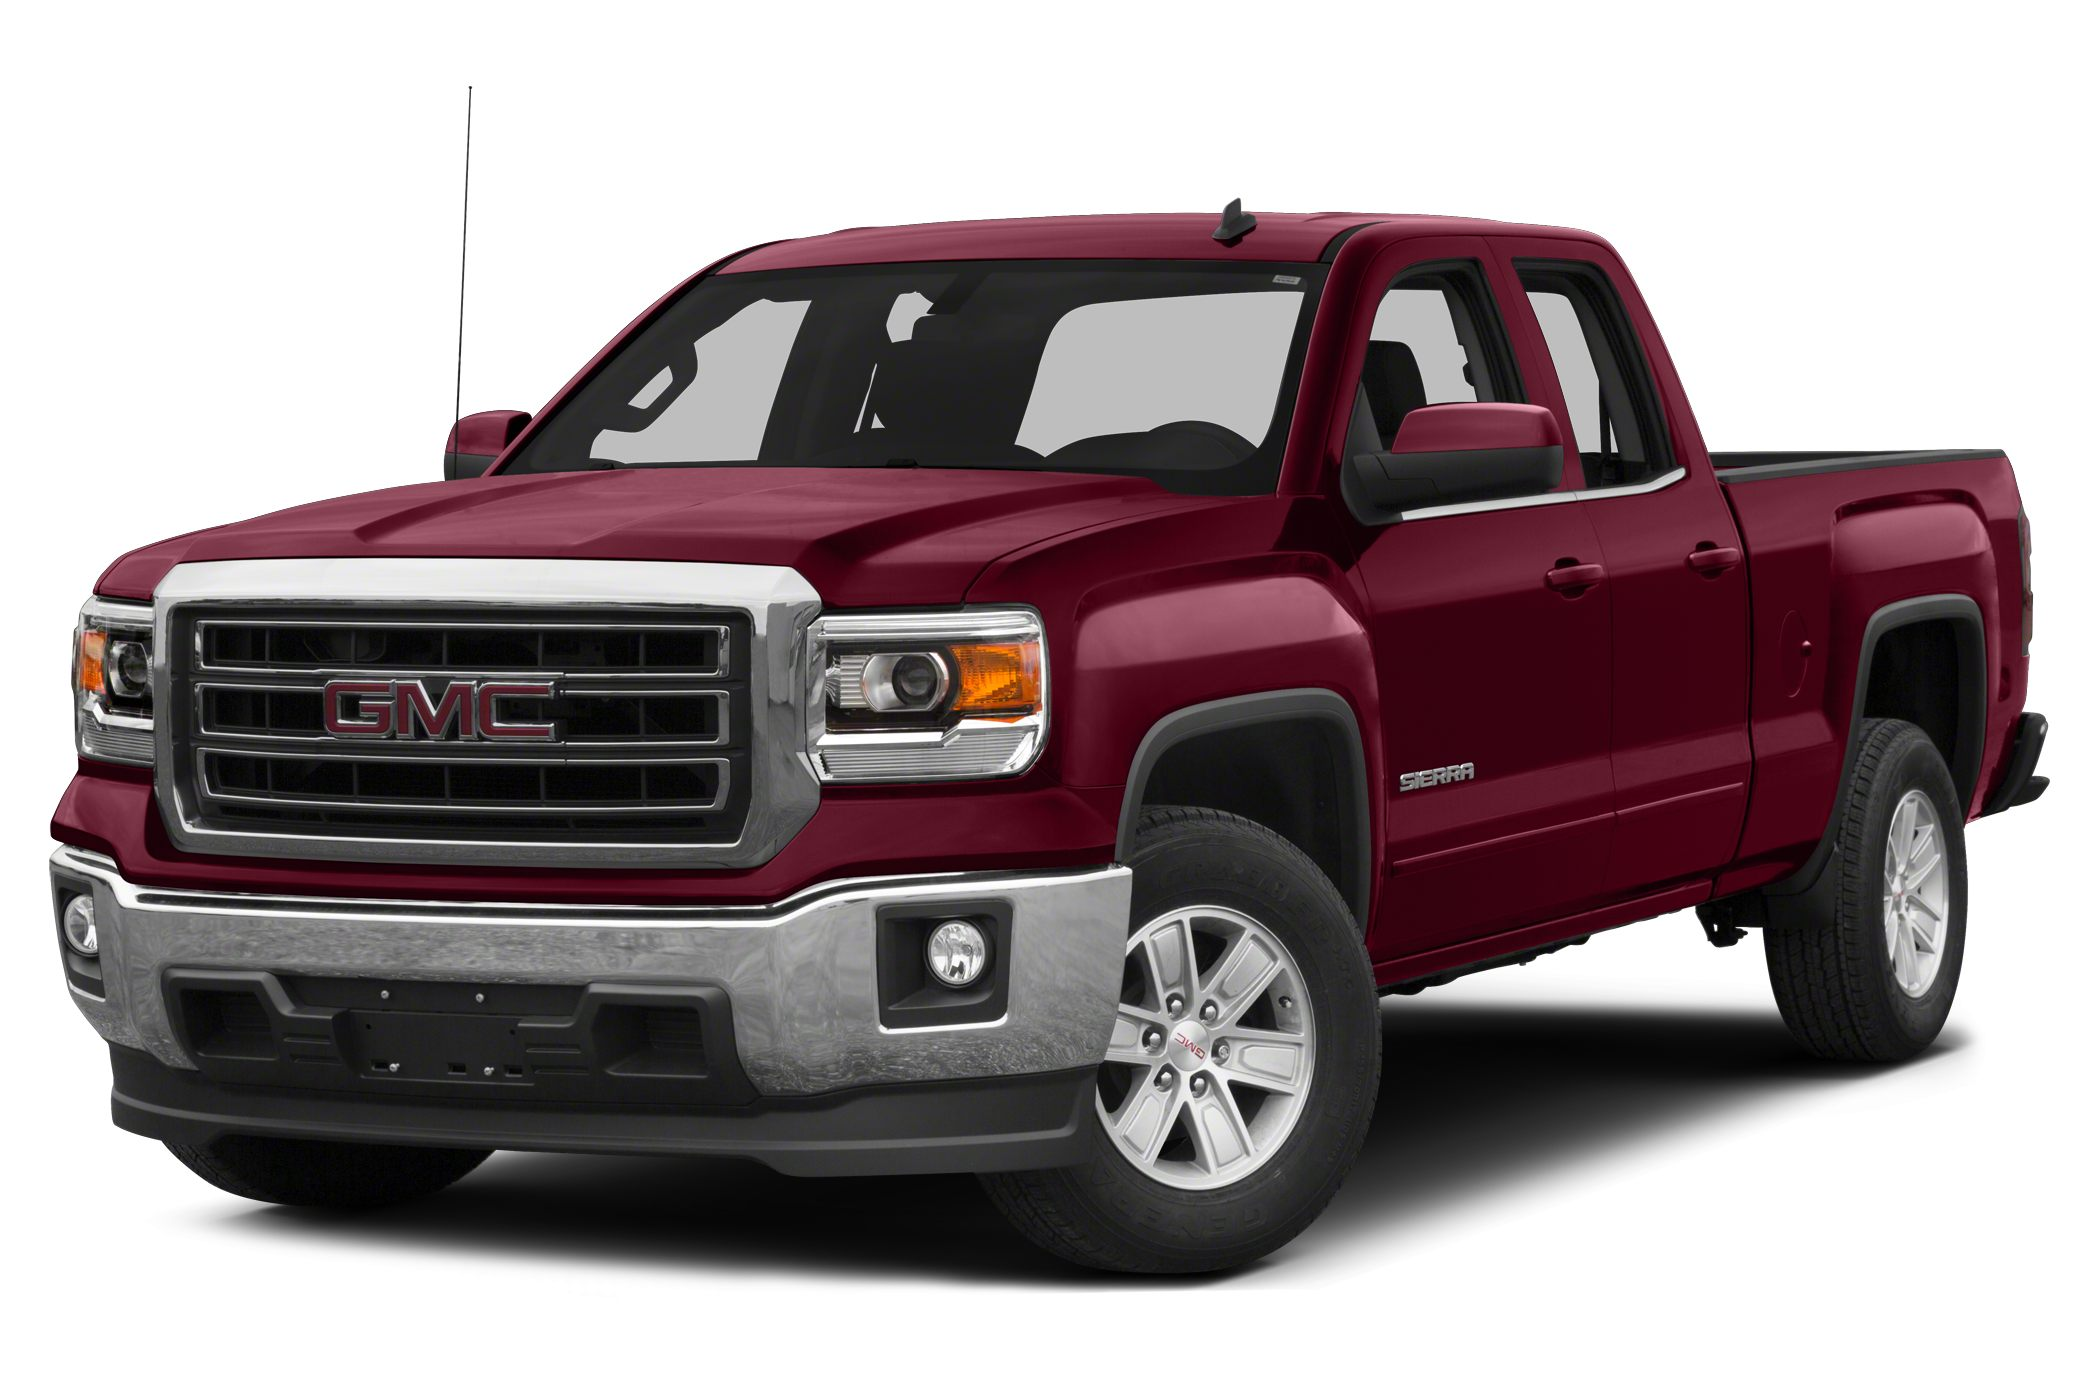 2015 GMC Sierra 1500 SLT Crew Cab Pickup for sale in Fremont for $45,602 with 0 miles